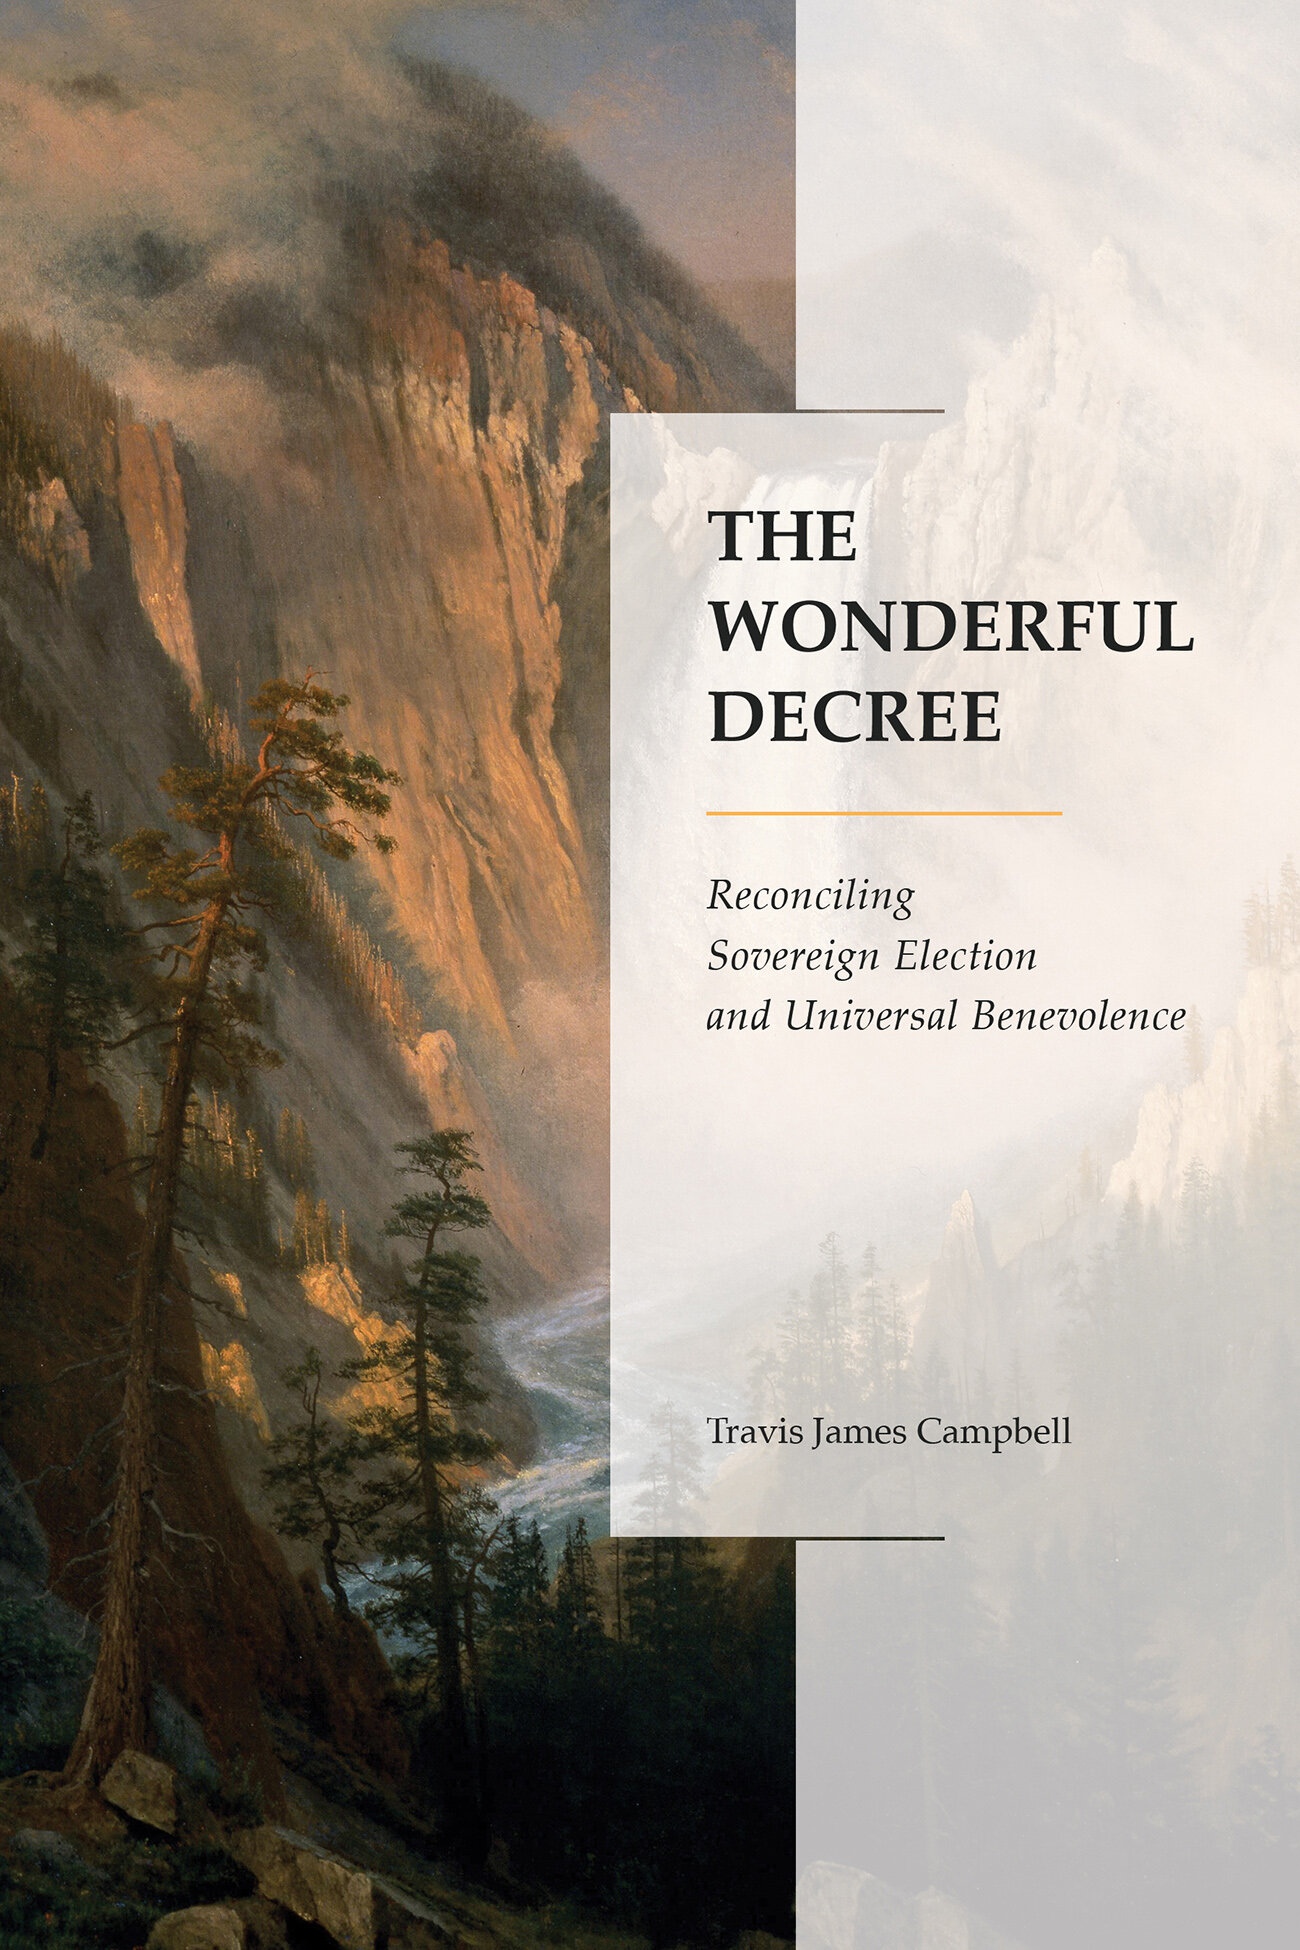 The Wonderful Decree: Reconciling Sovereign Election and Universal Benevolence